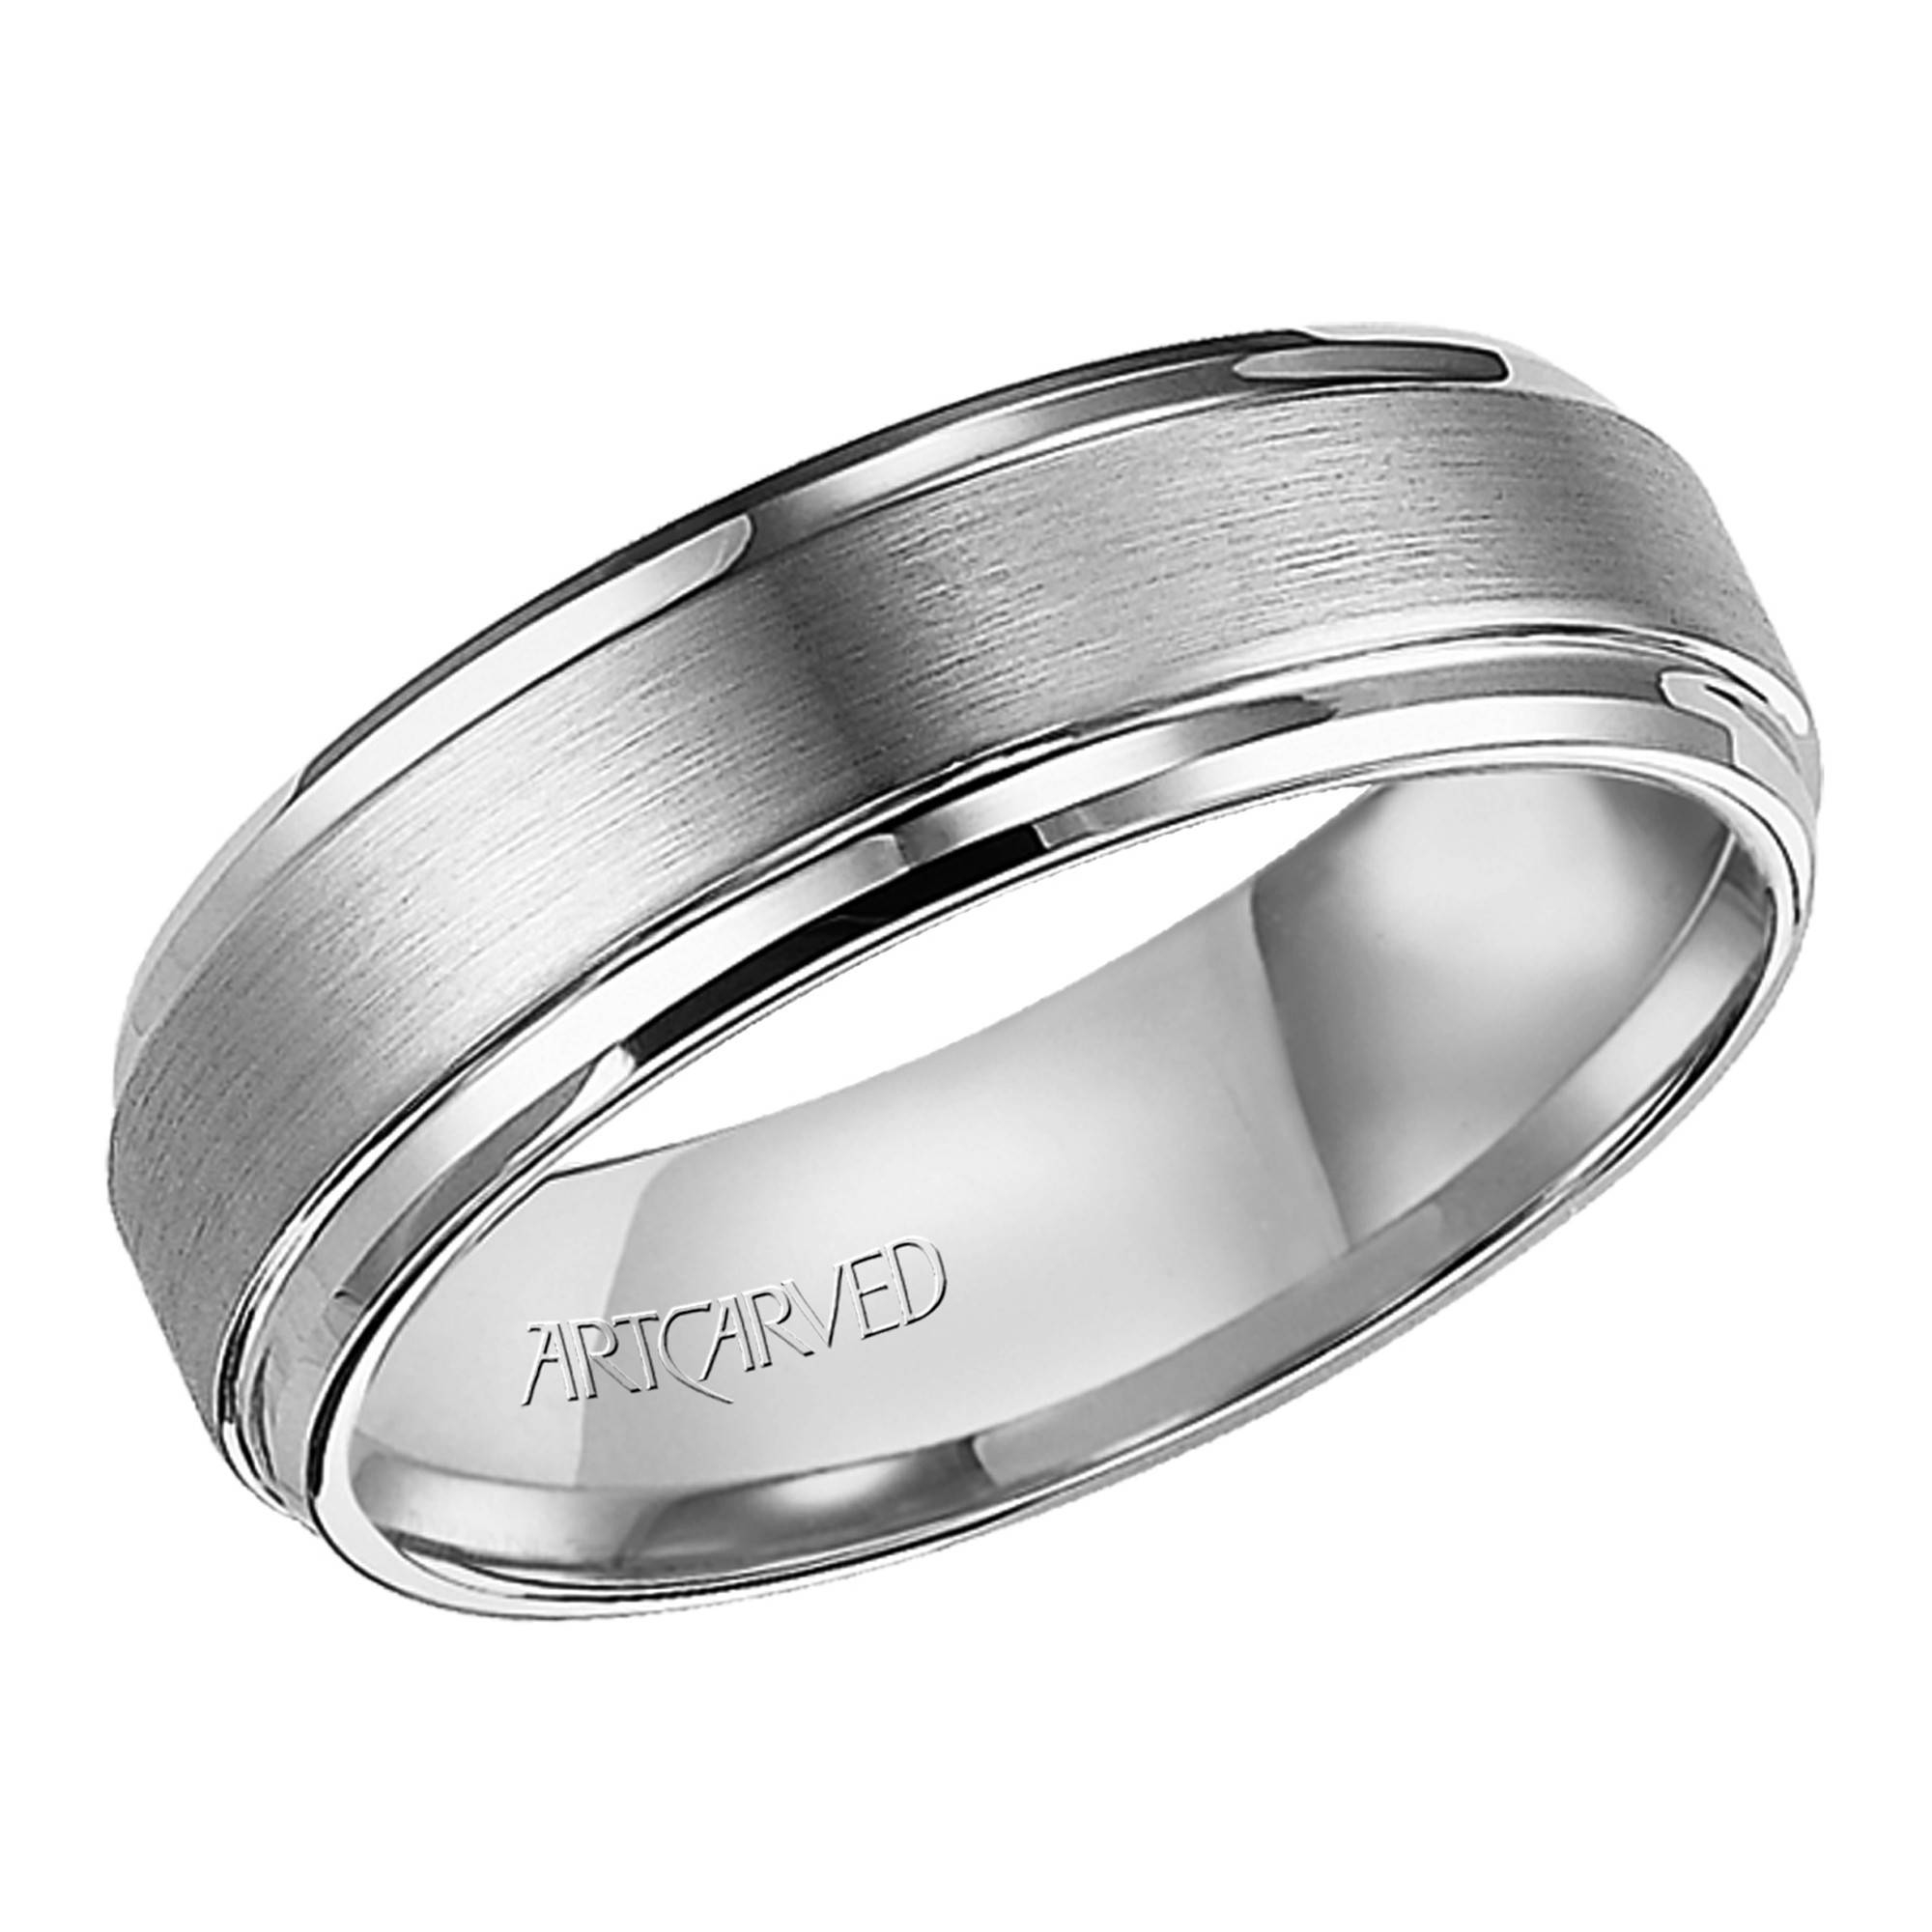 Artcarved Mens Exquisite Carved Wedding Band In Tungsten Carbide (7Mm) Inside Artcarved Men Wedding Bands (View 8 of 15)